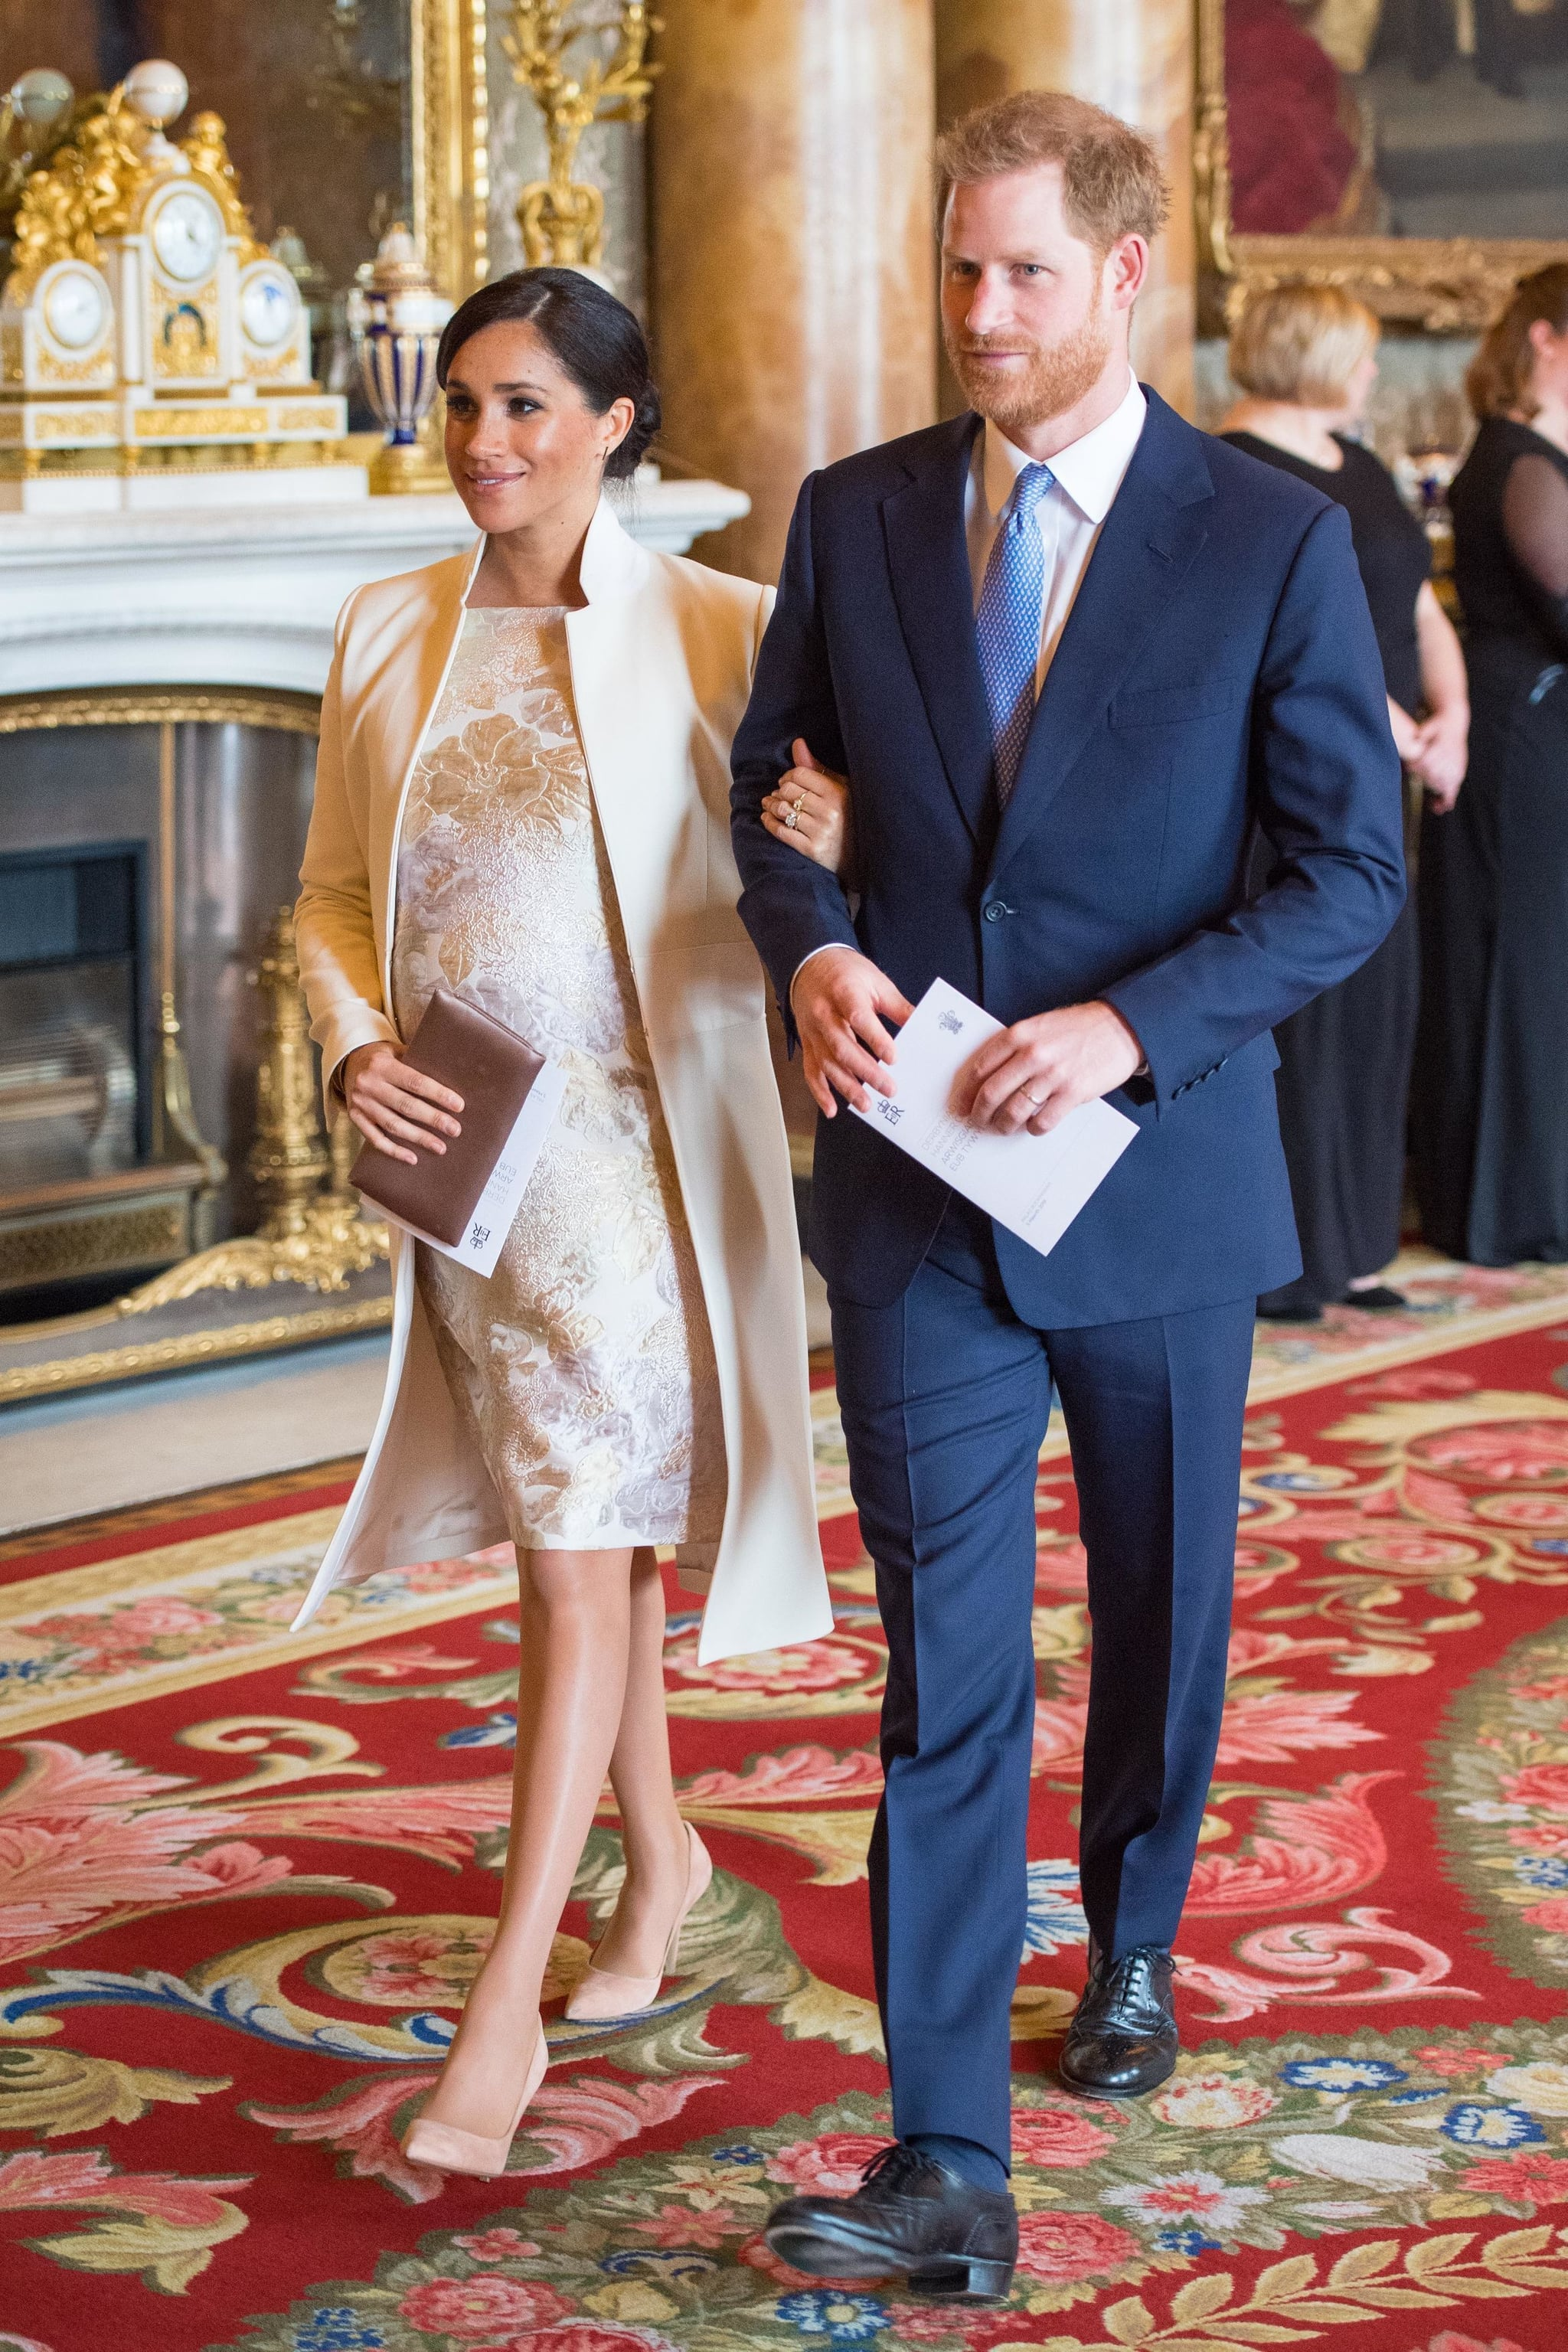 Britain's Prince Harry, Duke of Sussex, (R) and Britain's Meghan, Duchess of Sussex (L) attend a reception to mark the 50th Anniversary of the investiture of The Prince of Wales at Buckingham Palace in London on March 5, 2019. - The Queen hosted a reception to mark the Fiftieth Anniversary of the investiture of Britain's Prince Charles, her son, as the Prince of Wales. Prince Charles was created The Prince of Wales aged 9 on July 26th 1958 and was formally invested with the title by Her Majesty The Queen on July 1st 1969 at Caernarfon Castle. (Photo by Dominic Lipinski / POOL / AFP)        (Photo credit should read DOMINIC LIPINSKI/AFP/Getty Images)